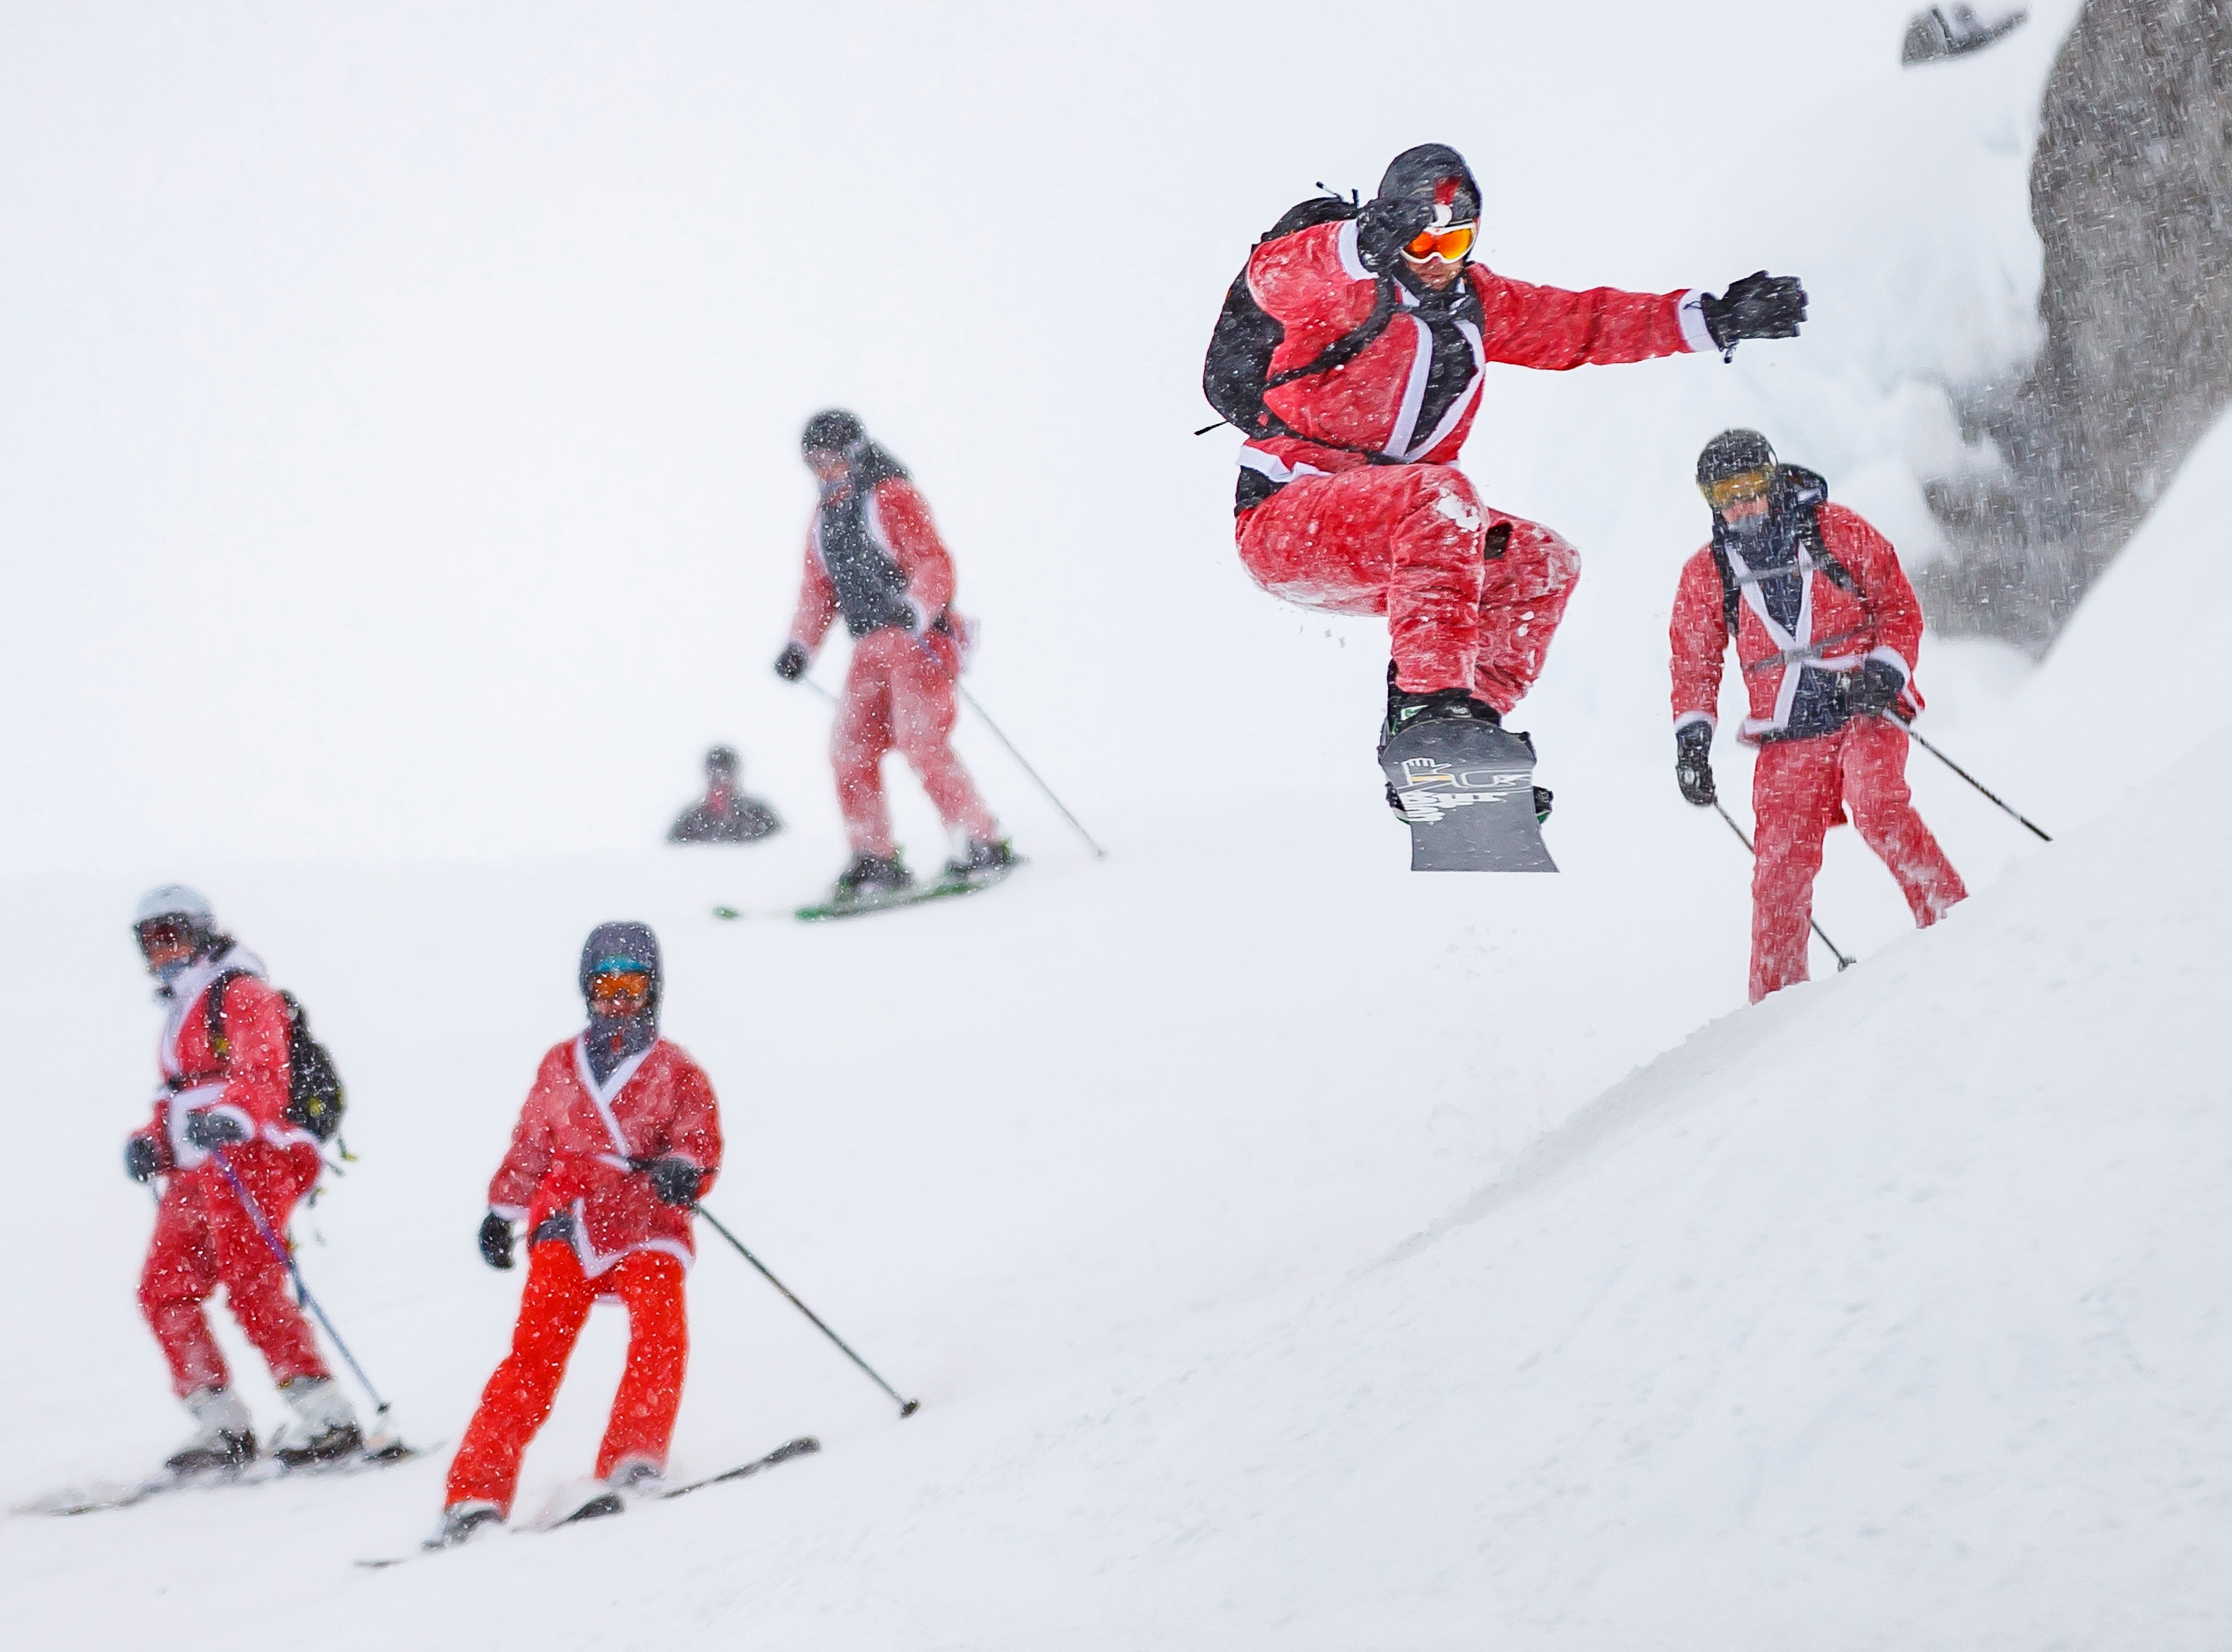 People dressed as Santa Claus enjoy the slopes of the alpine ski resort of Verbier, Switzerland on Dec. 8, 2018. 3015 skiers and snow boarders dressed as Santa Claus and Saint Nicholas were granted discounted 5 Swiss franc access pass to the ski resort as a promotional event to celebrate the opening of the ski season.